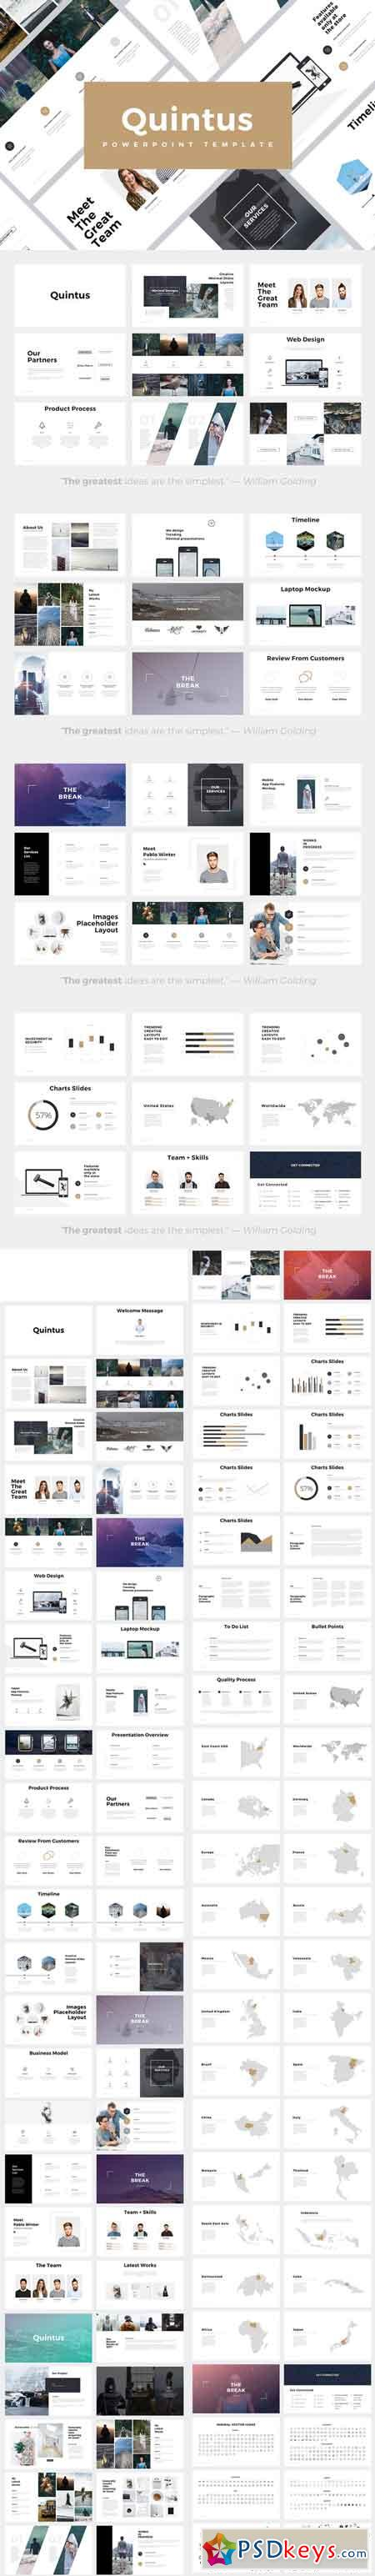 Quintus Minimal Powerpoint Template 685988